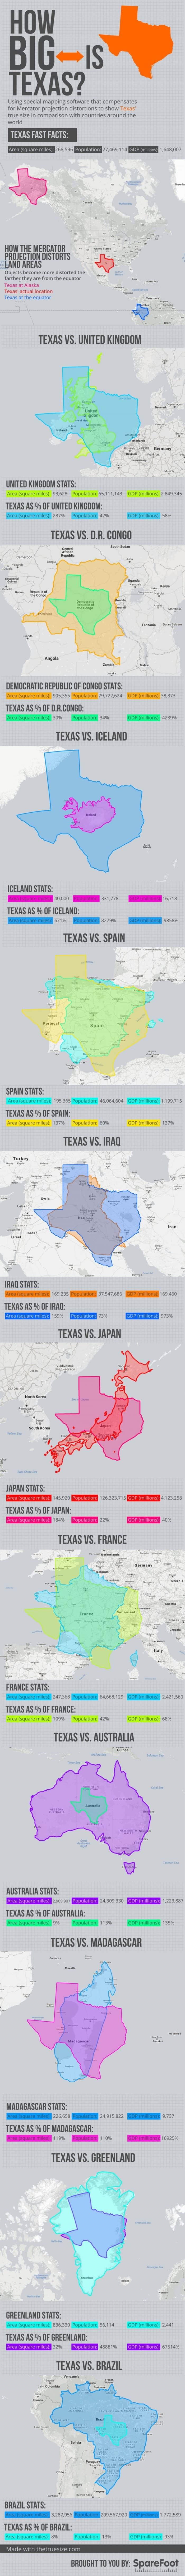 Texas is a large area